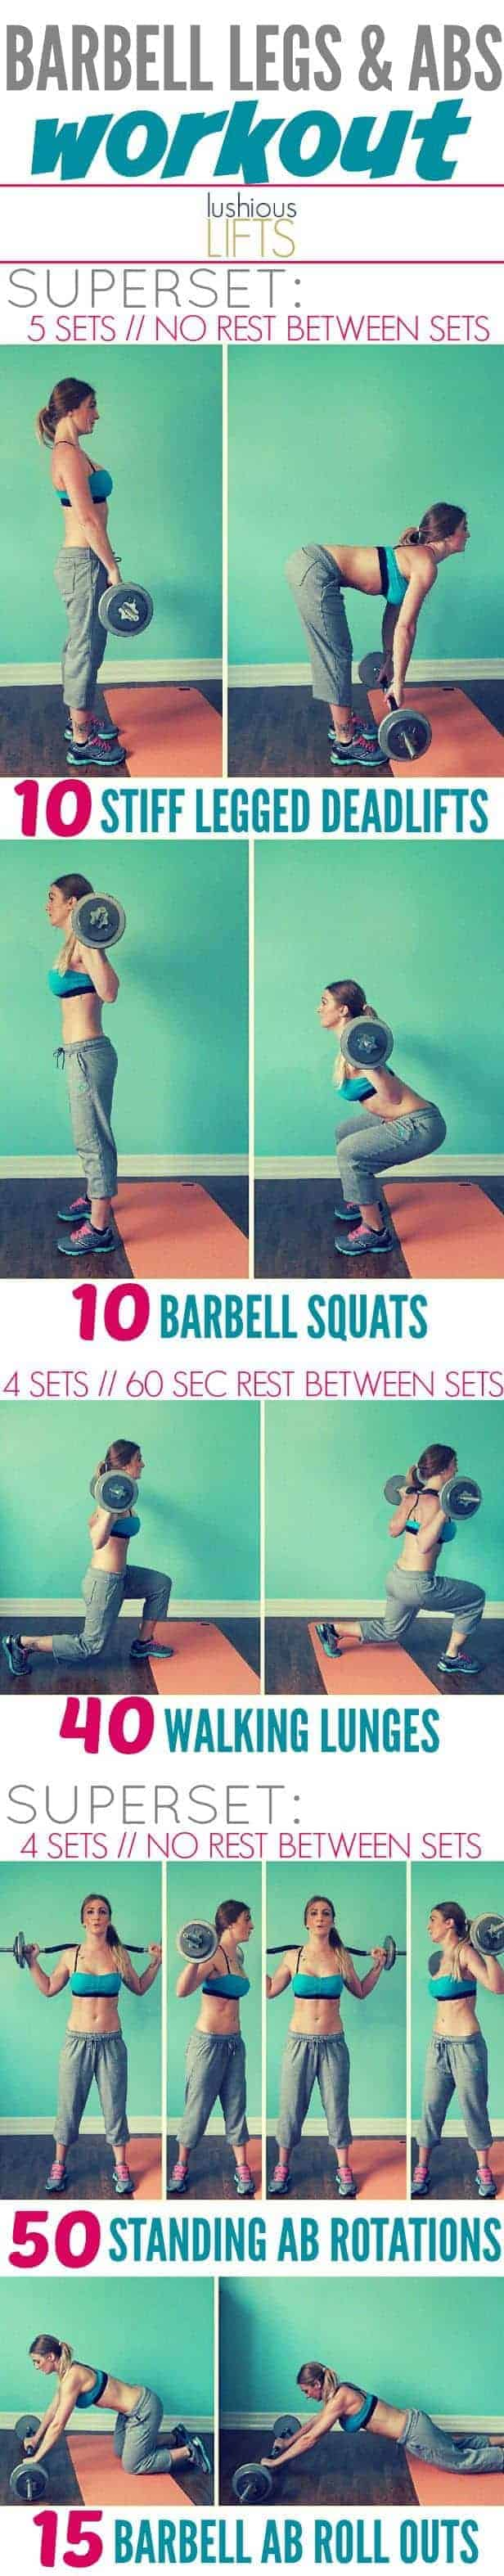 barbell-abs-leg-workout-routine